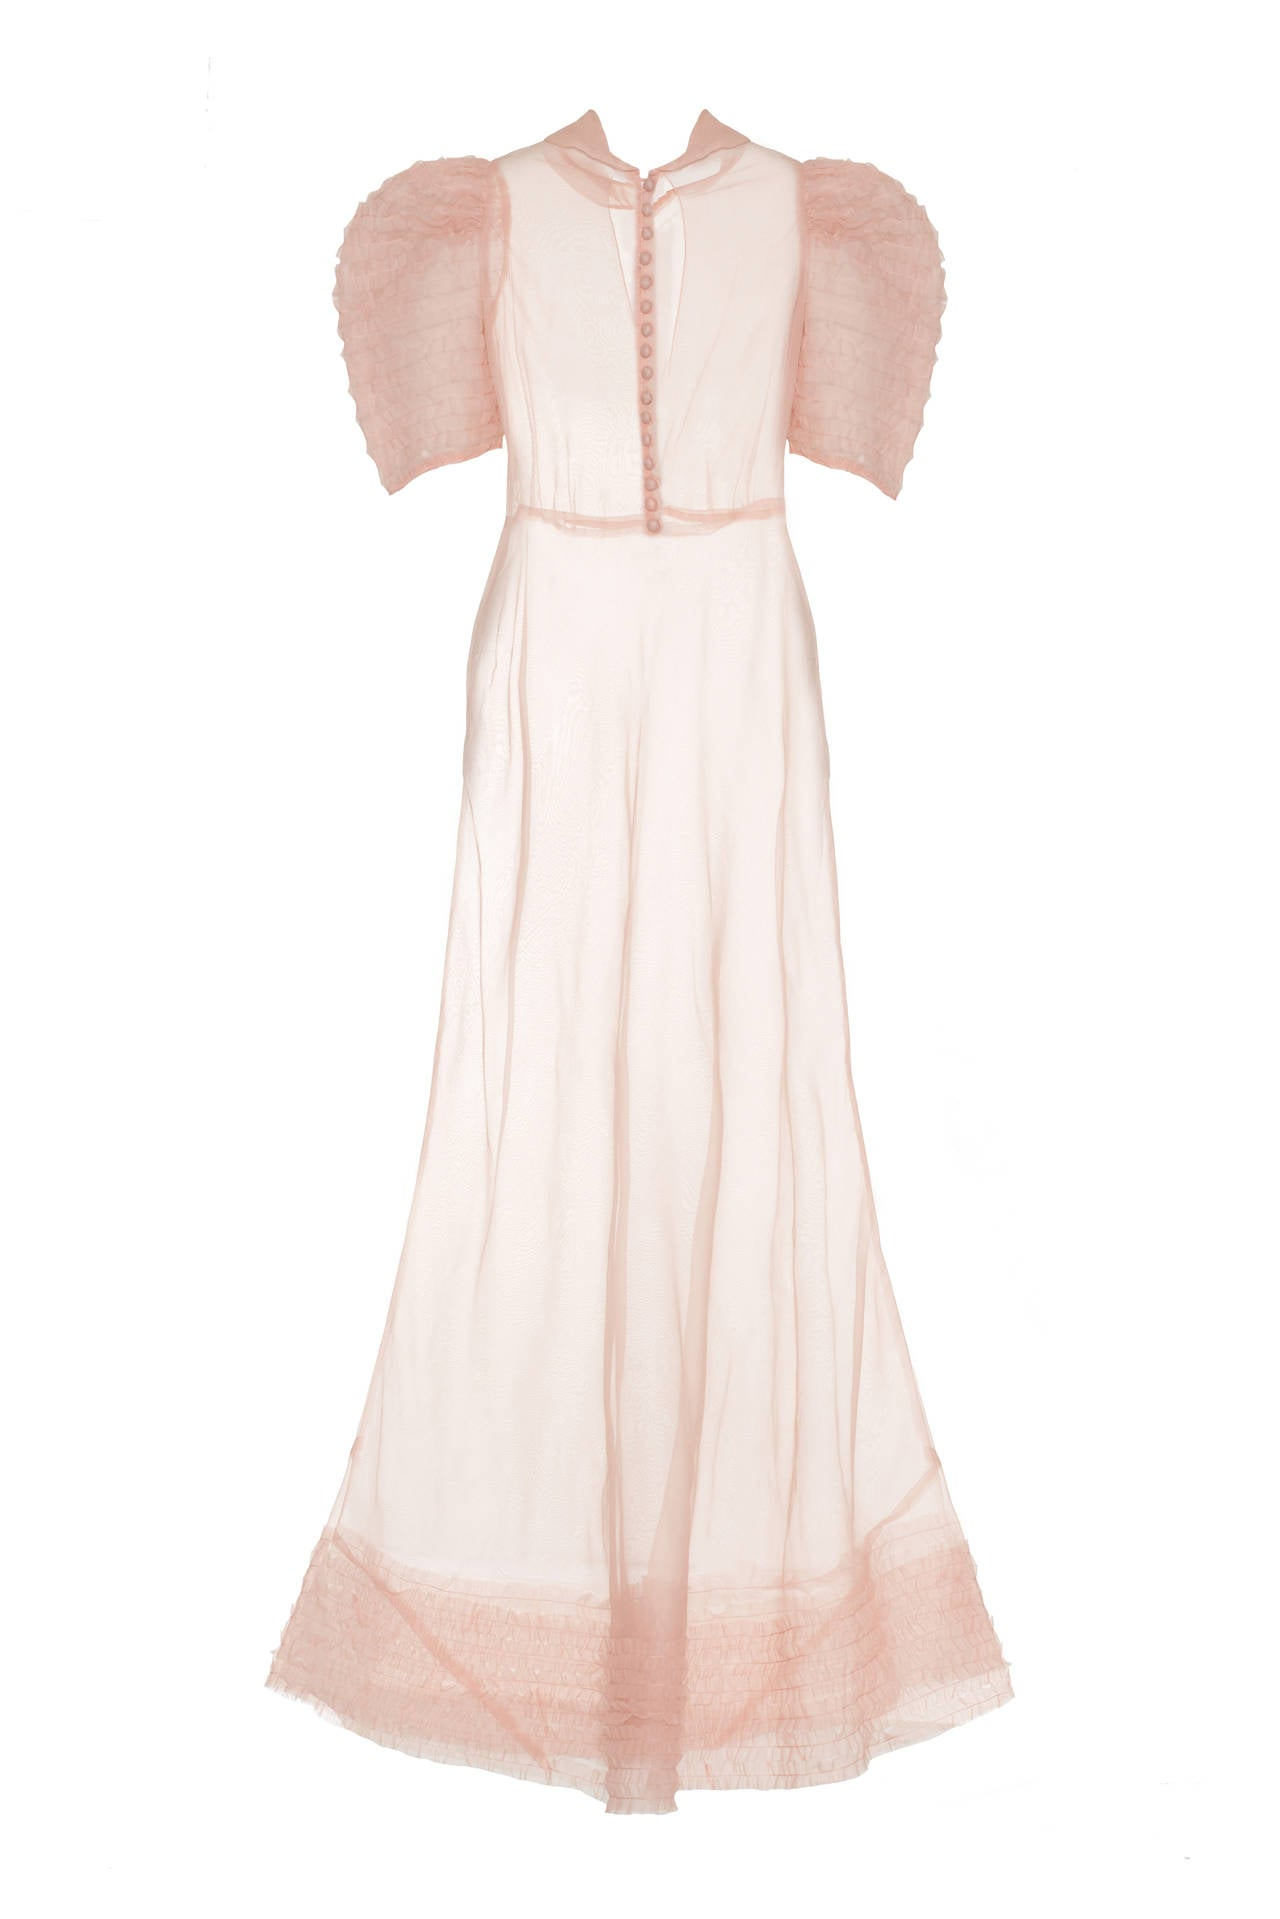 This beautiful pale pink organza floor length tea gown has exaggerated puff sleeves which feature rows of stitched ruffled organza.  It also has corresponding rows of stitched ruffles on the hem. The A-line dress has a lovely peter pan collar and 16